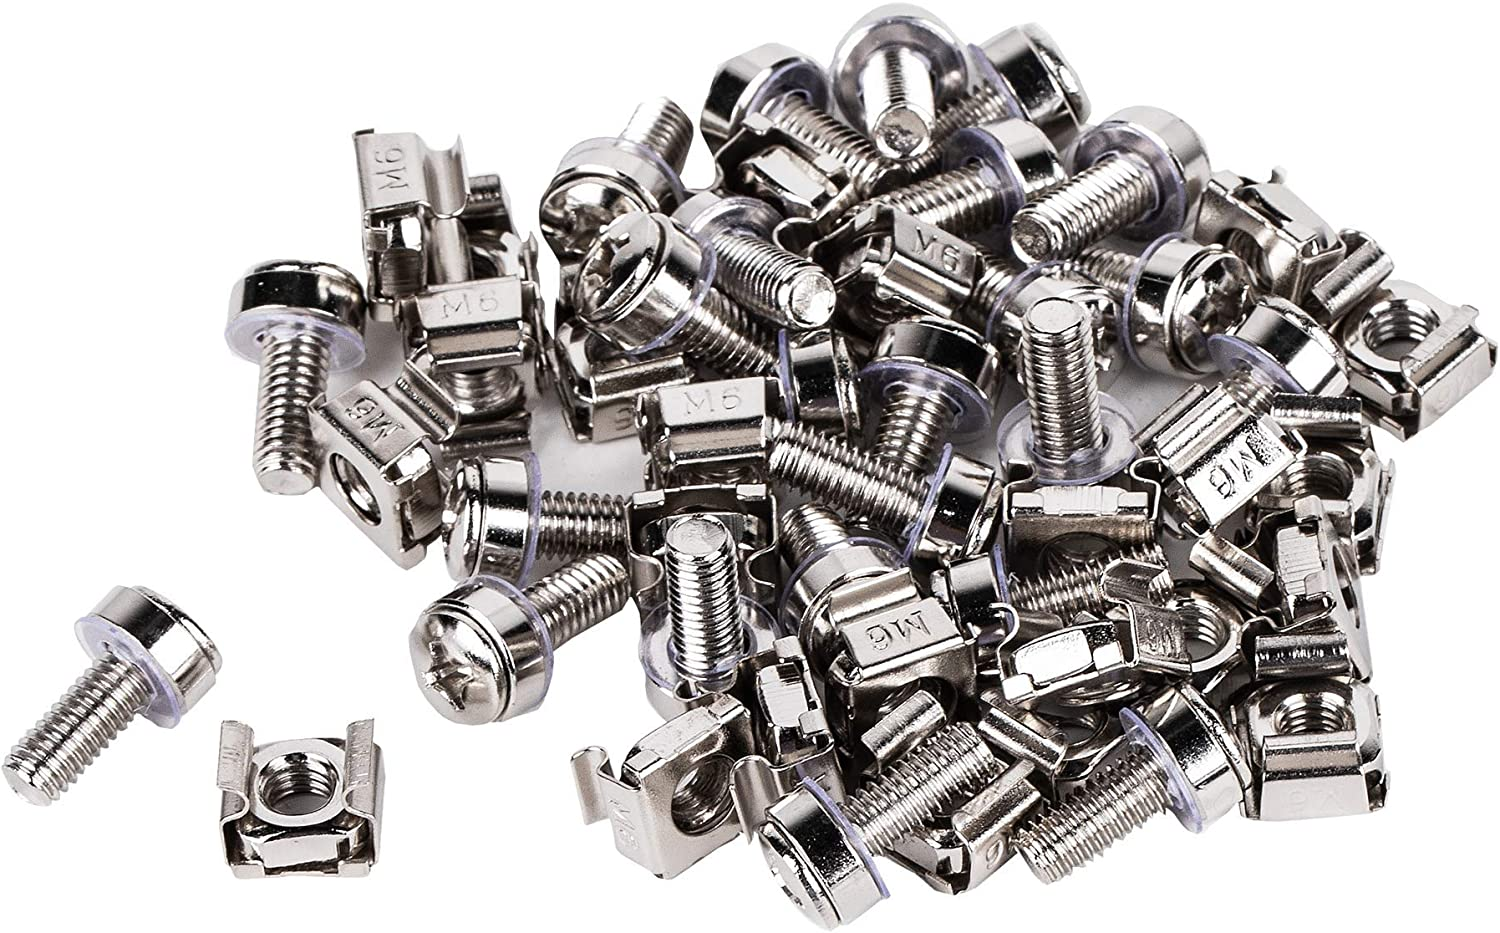 KENUCO M6 Cage Nuts and Screws for Rack Mount Server Shelves Cabinets Set of 30 PCS